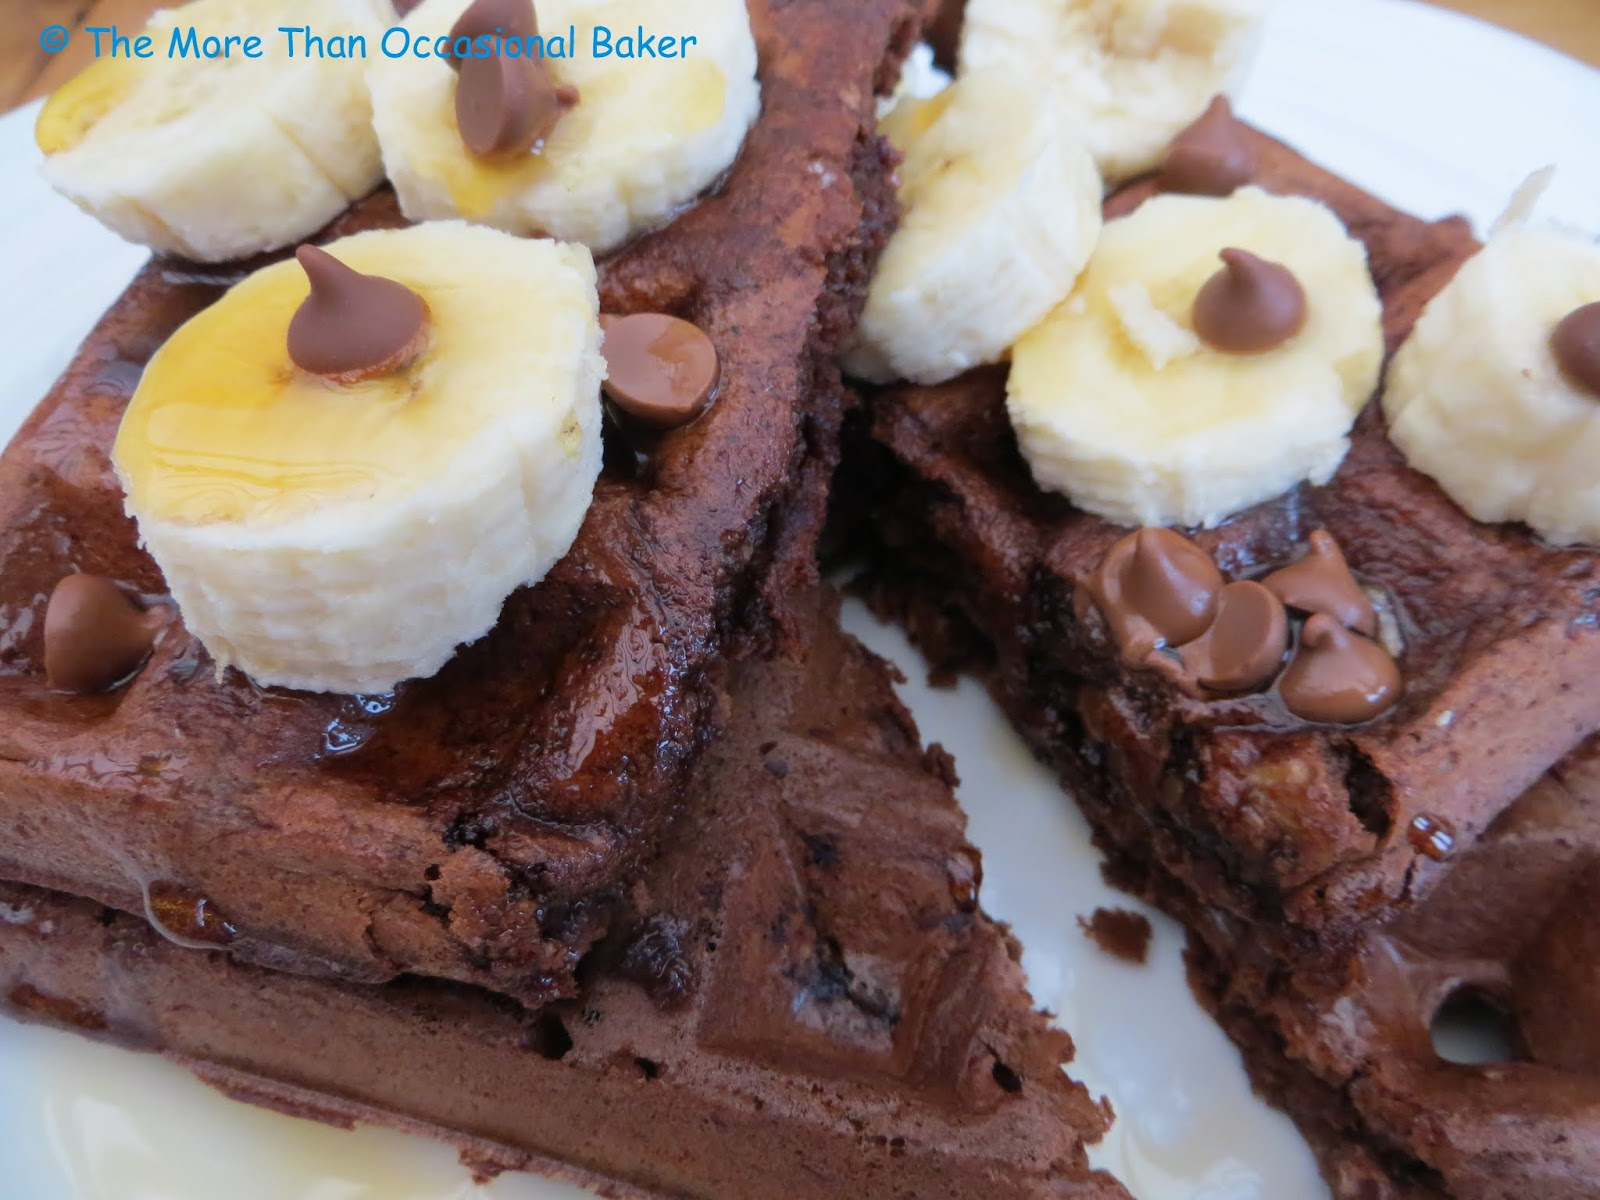 The more than occasional baker: Banana, chocolate and ...